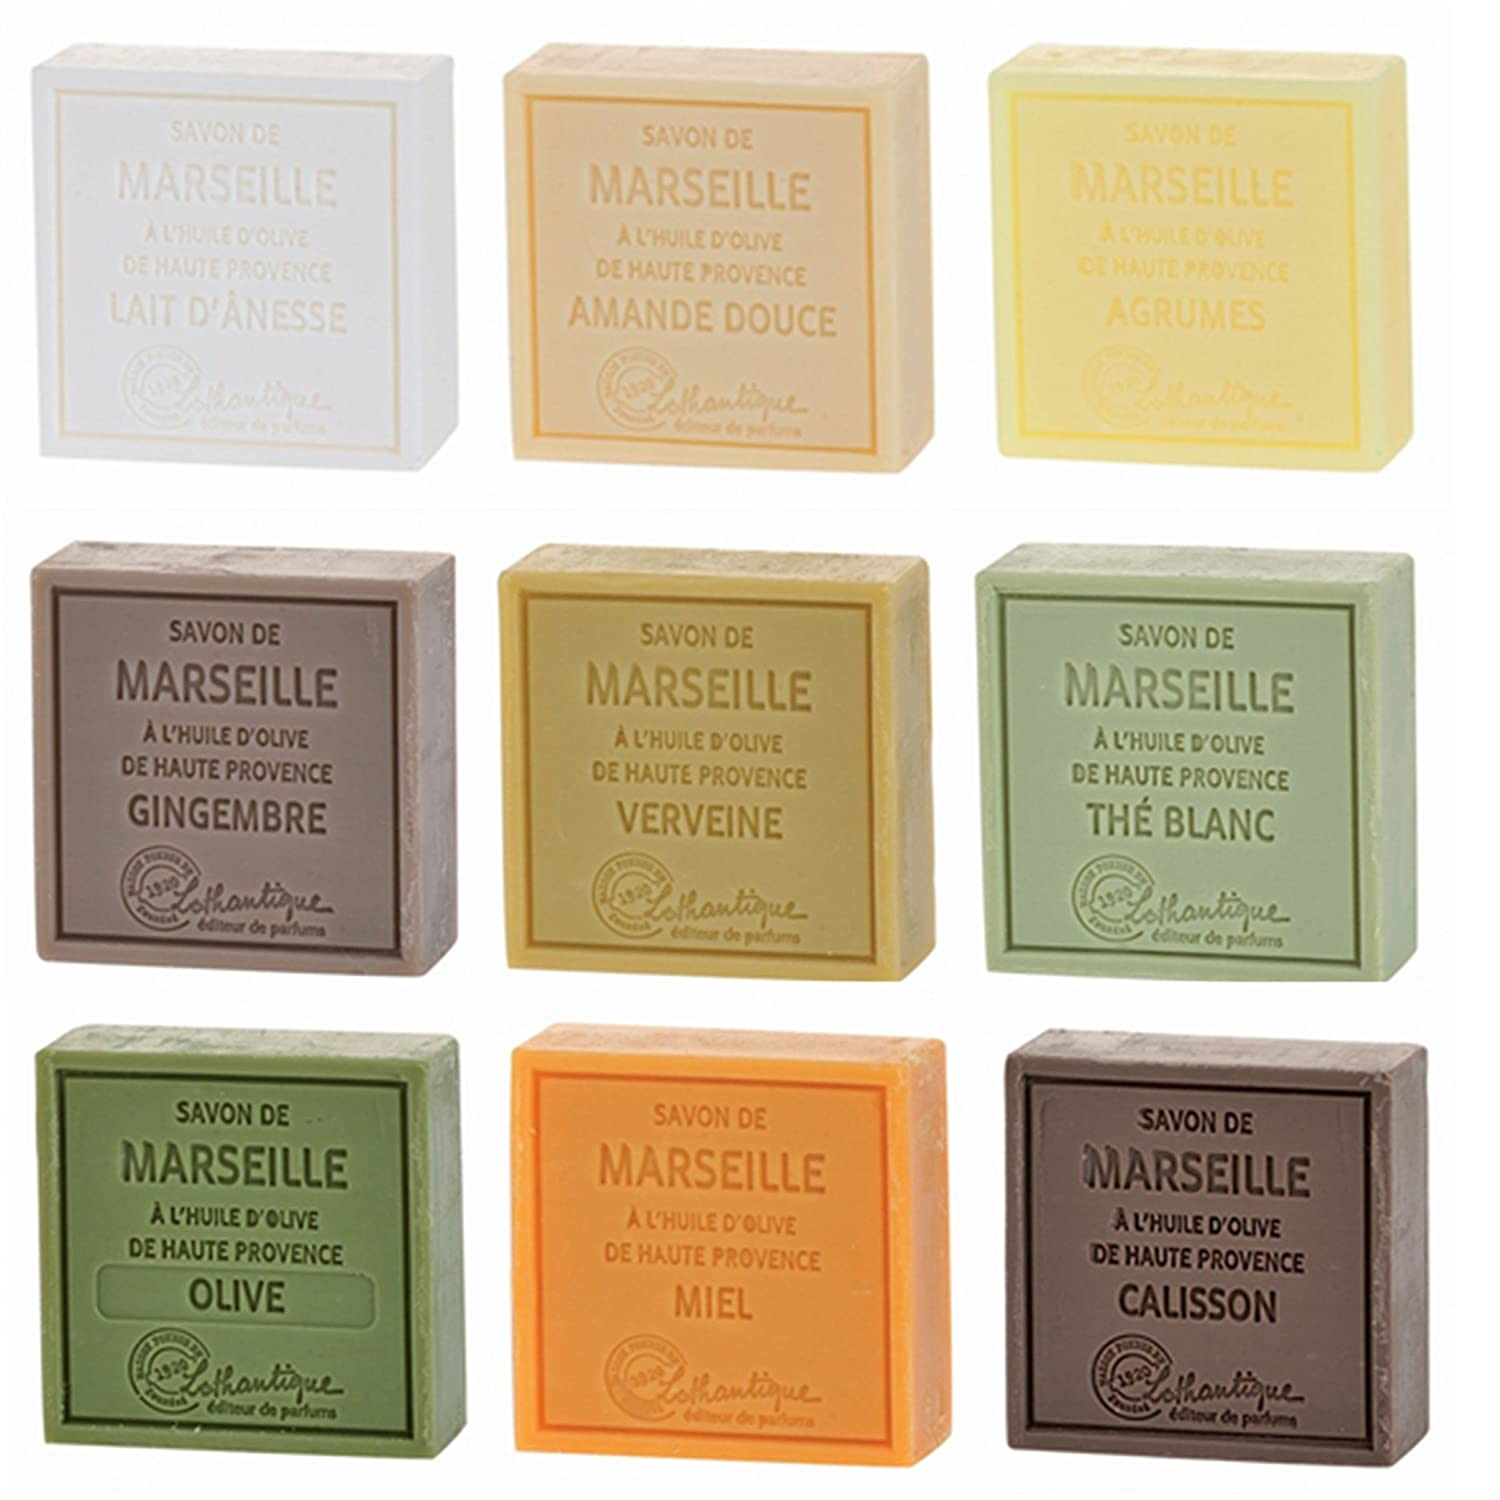 Lothantique Savon de Marseille Soap, set of 9, 100G each